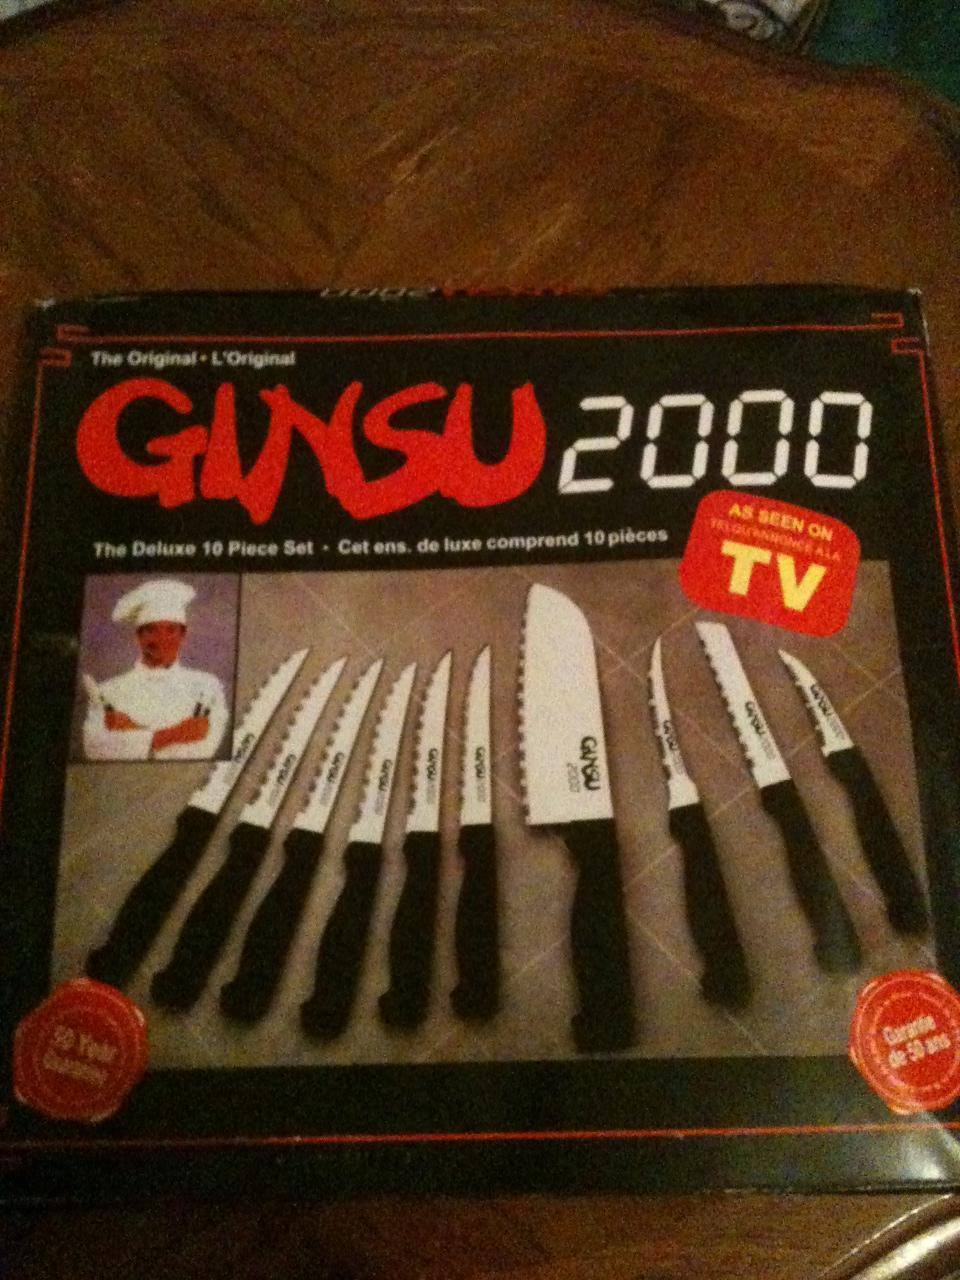 ORIGINAL GINSU 2000 AS SEEN ON TV DELUXE 10 PIECE KNIFE SET